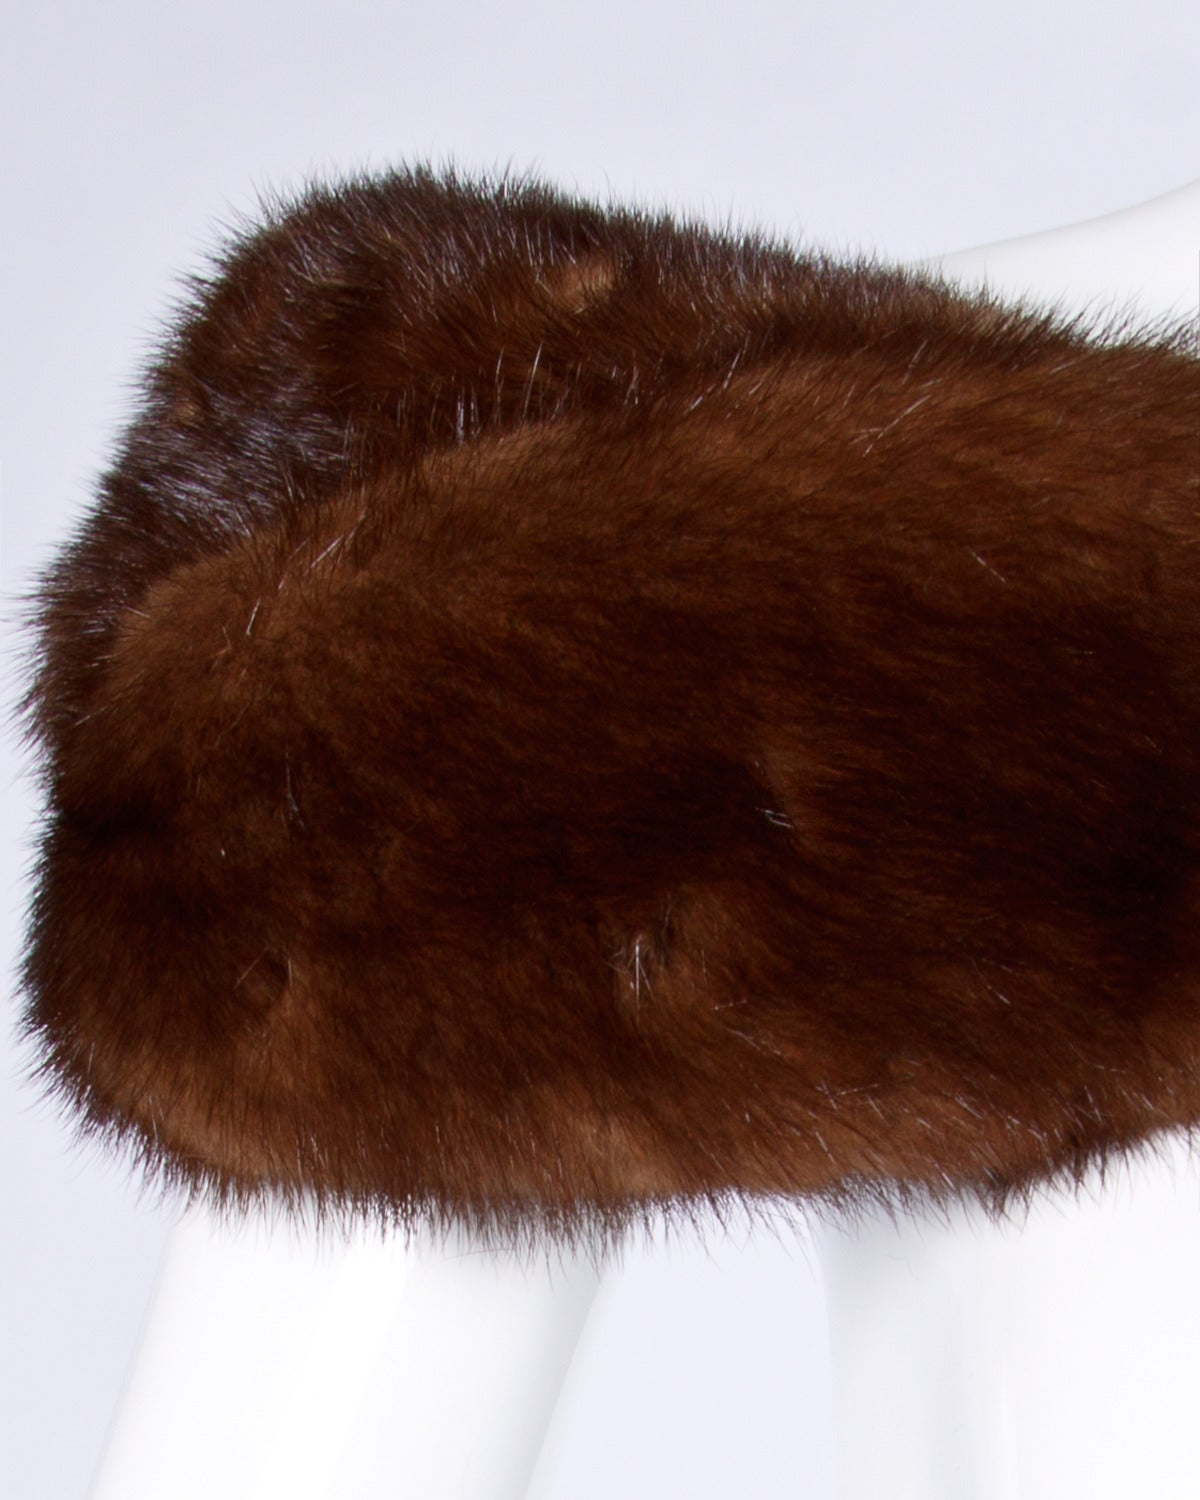 Vintage Mink Fur Shoulder Wrap or Stole 4